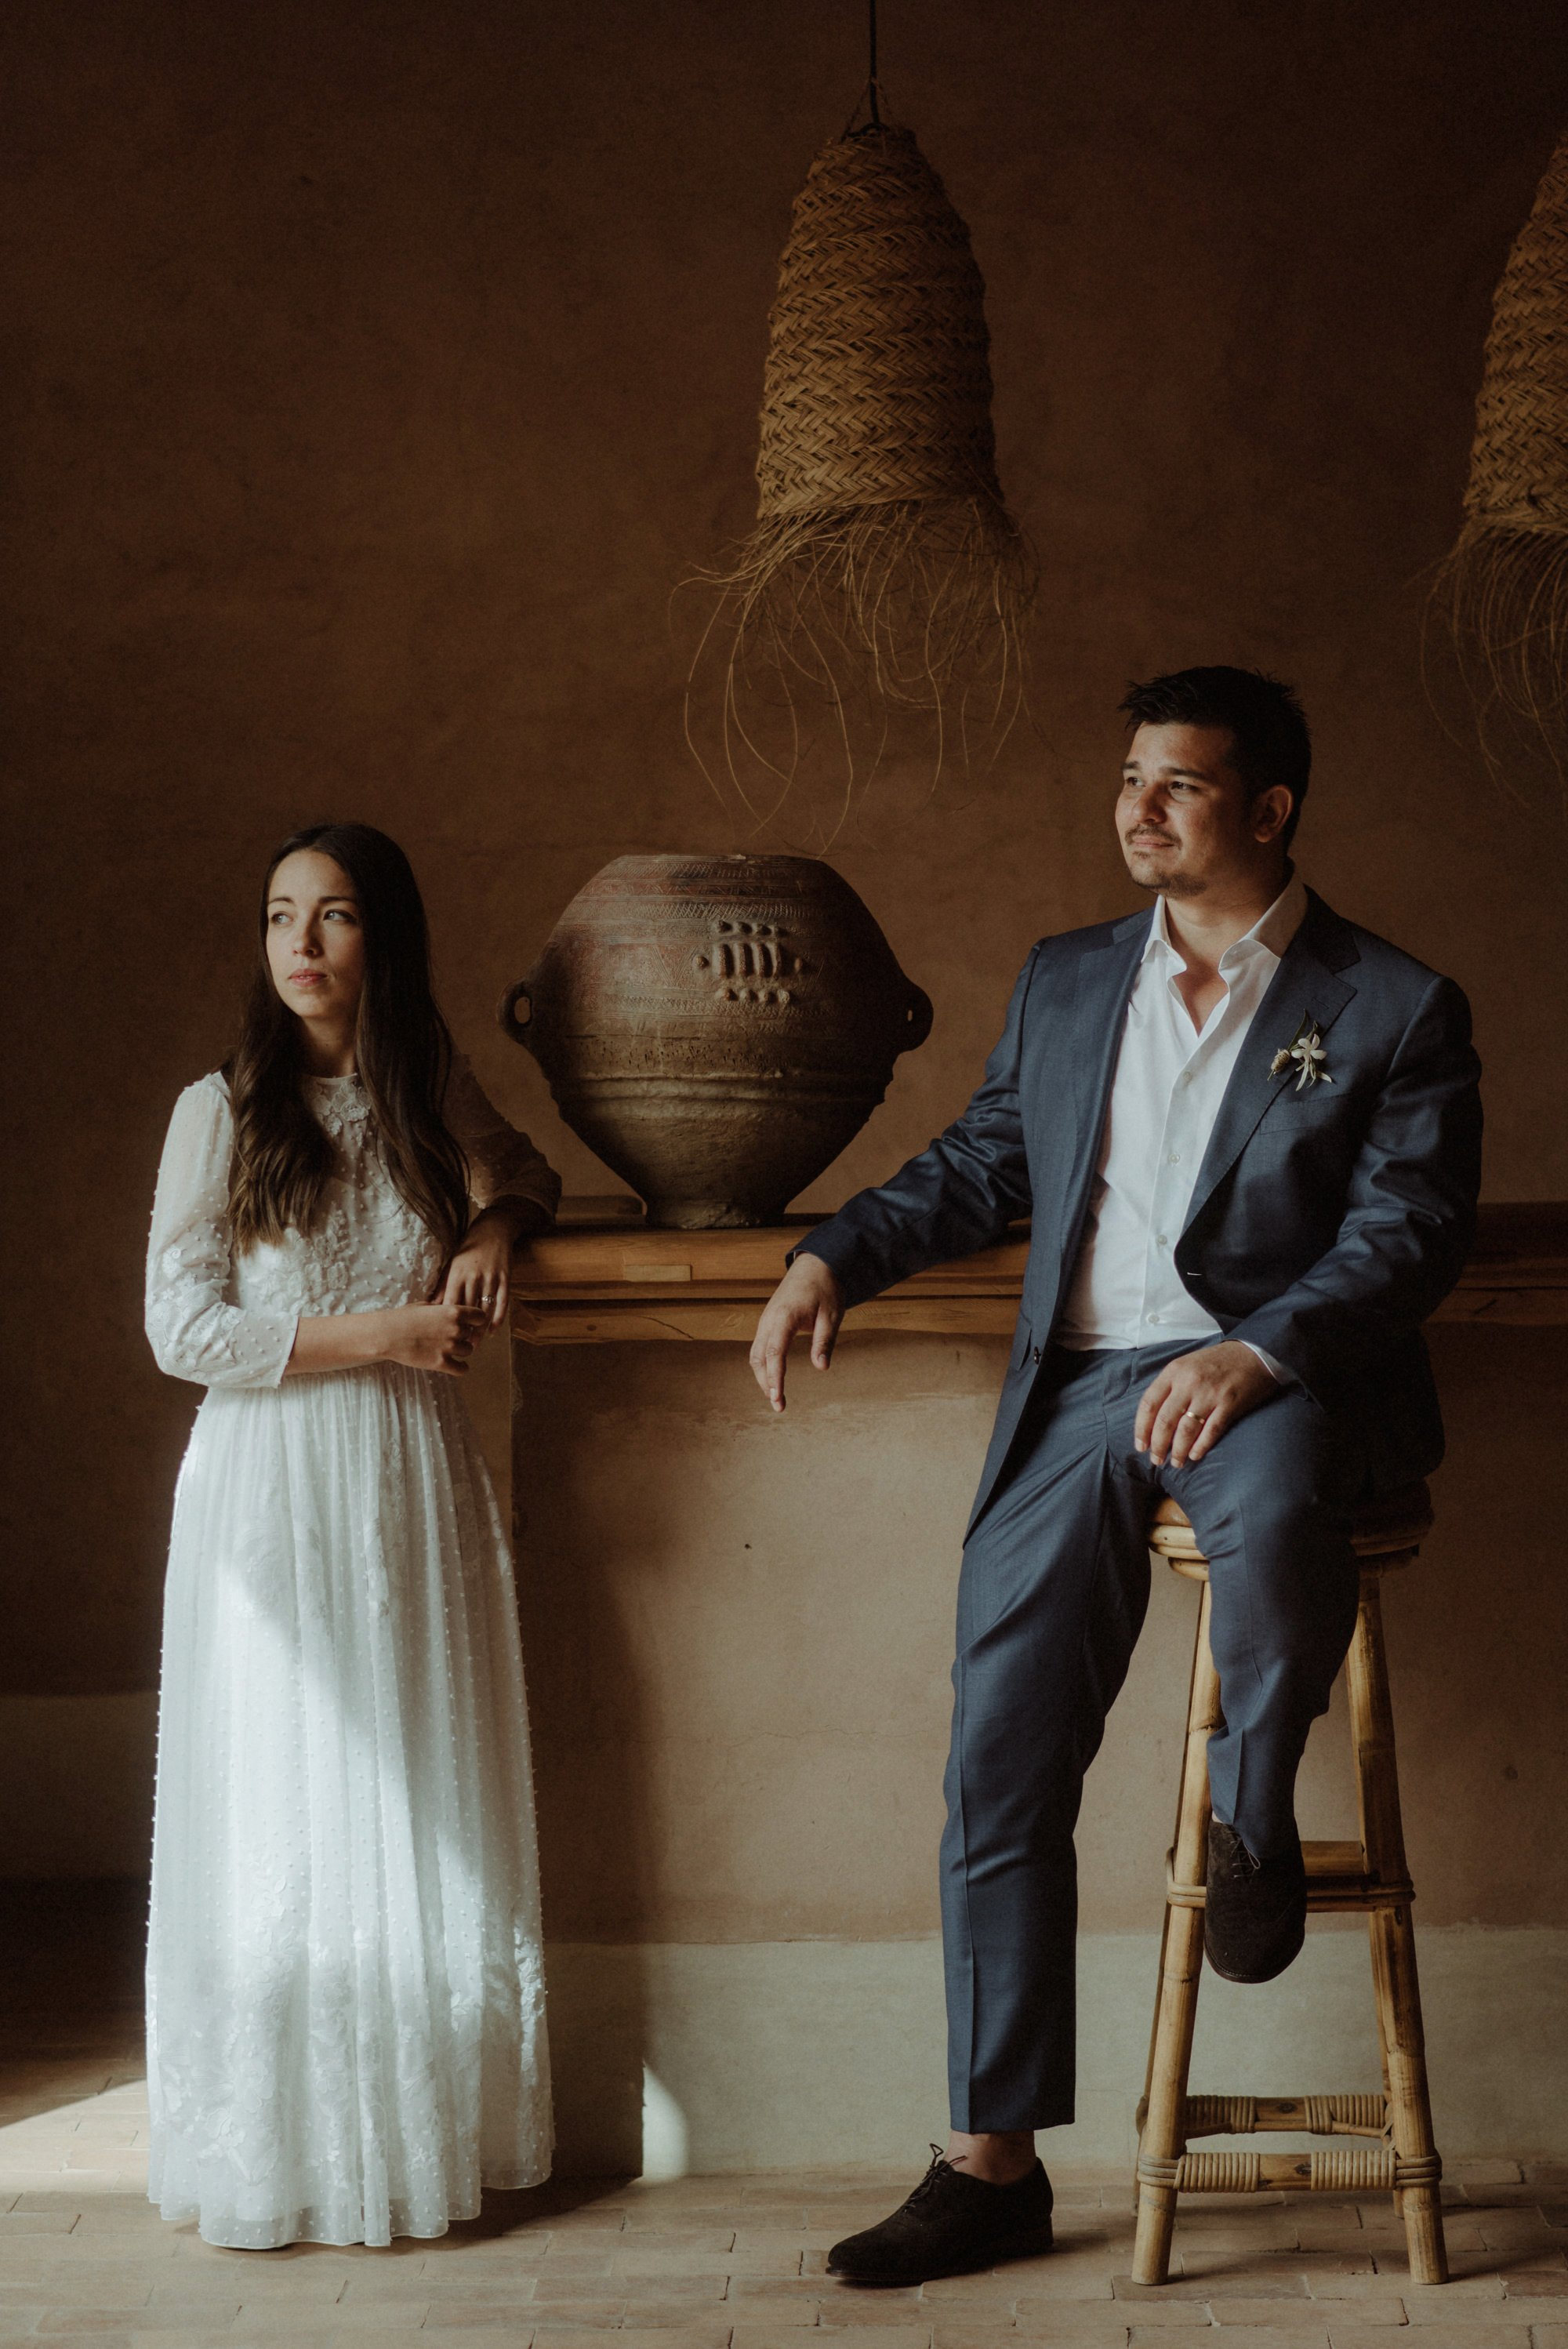 berber lodge morocco wedding photography 1 1